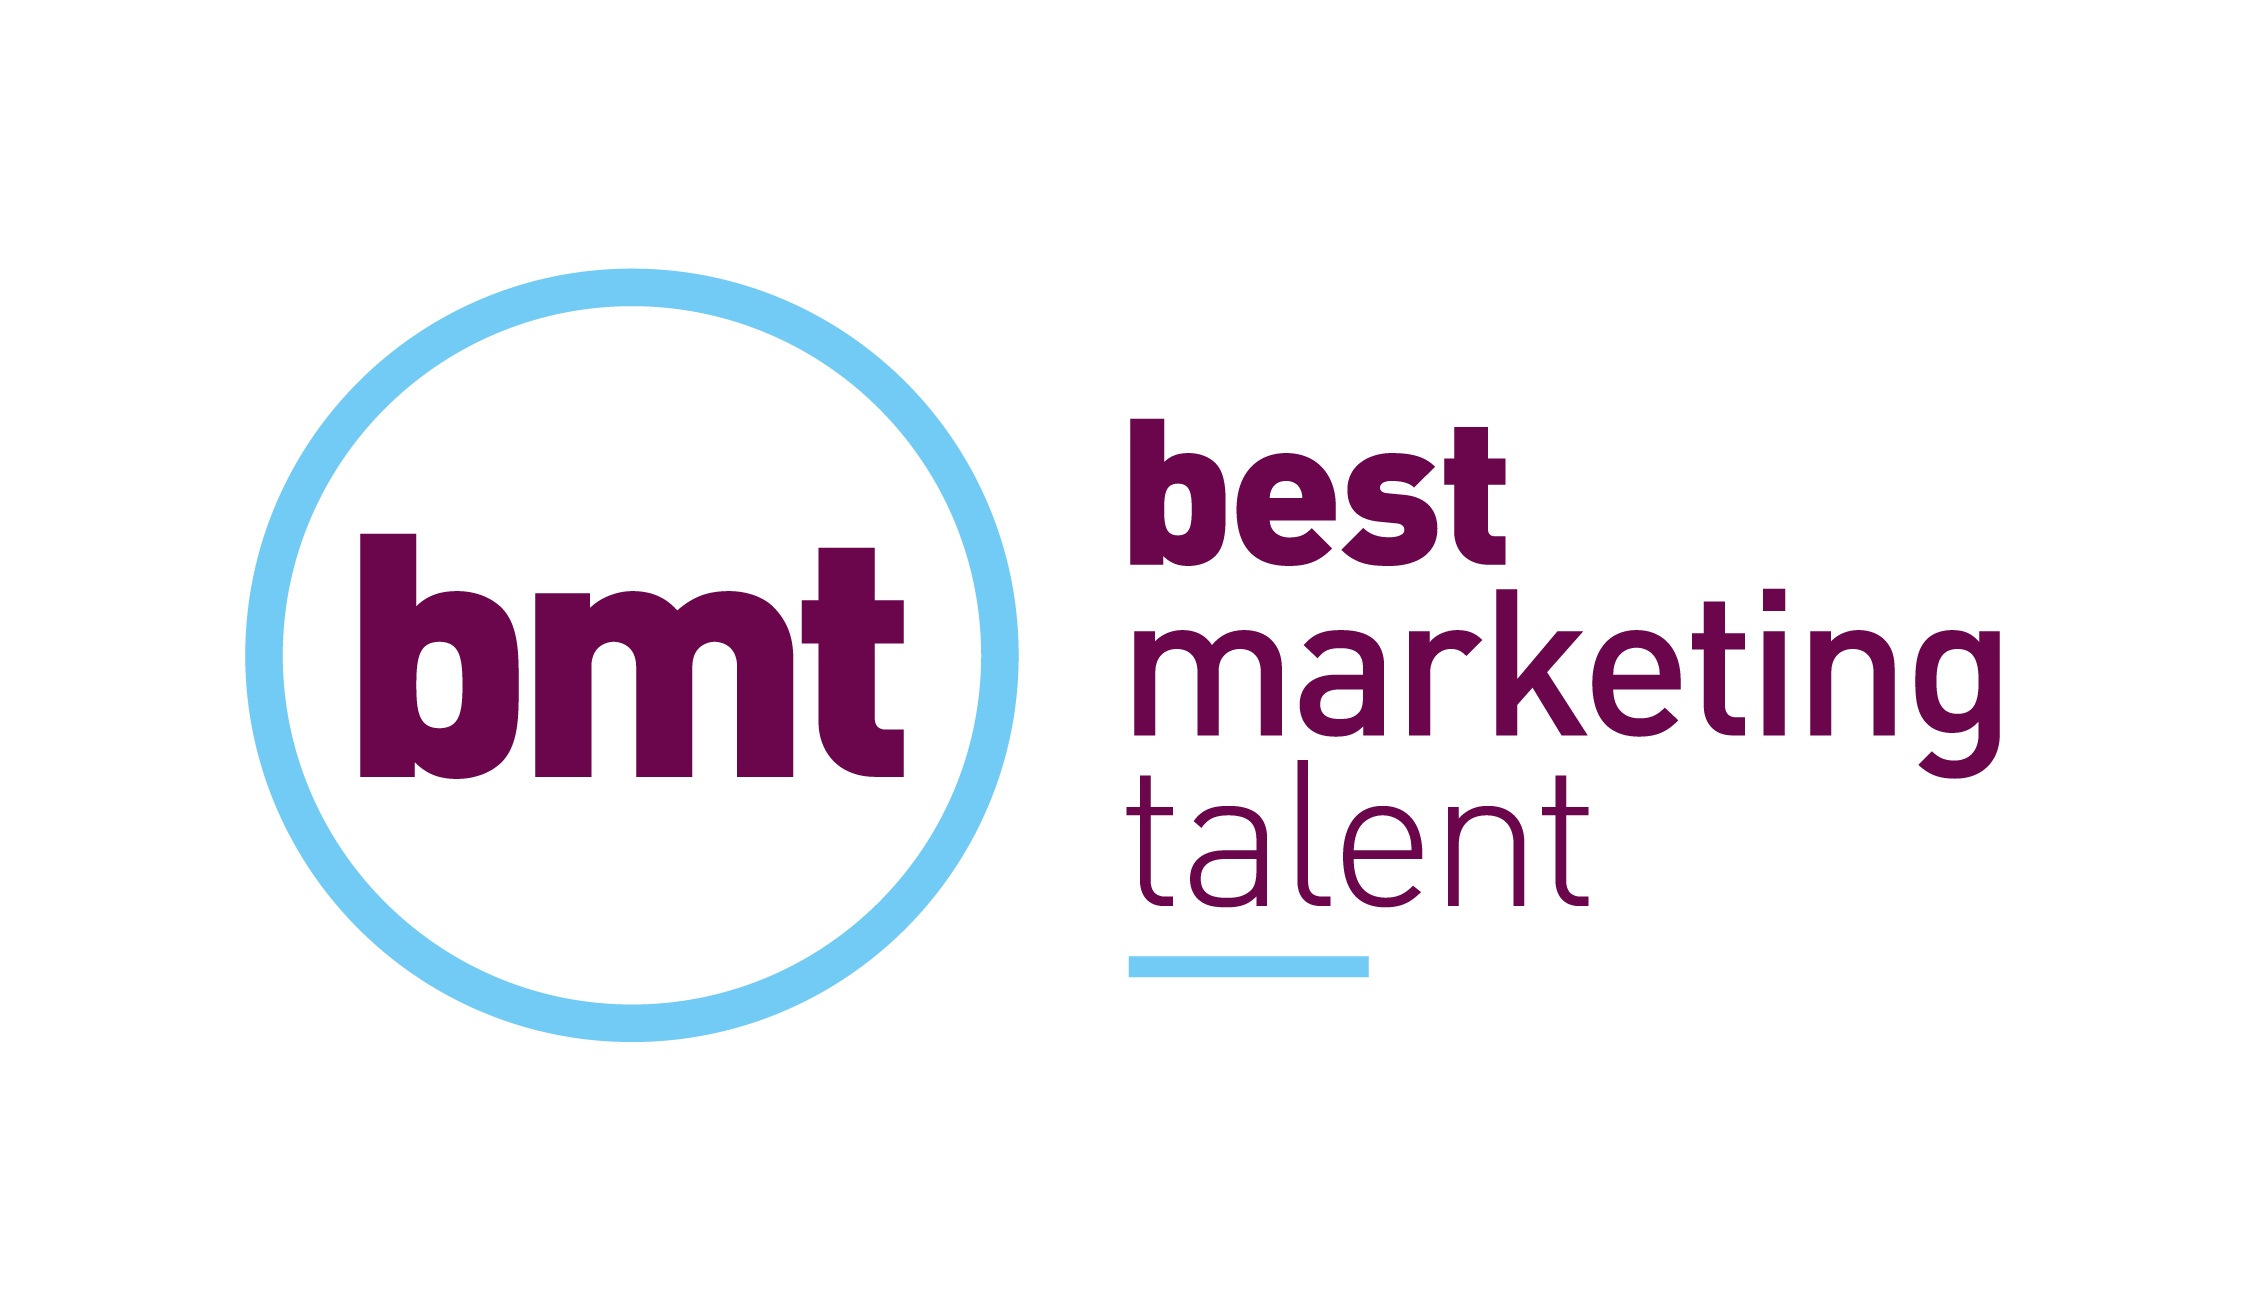 Best Marketing Talent